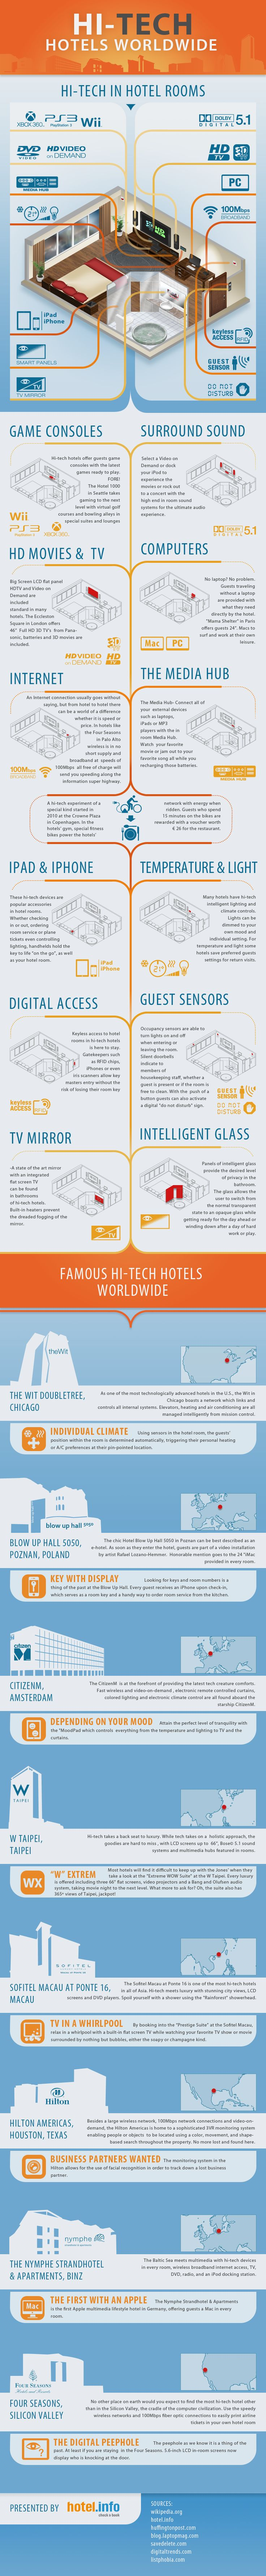 66 best interesting facts images on pinterest info graphics the future is now for tech friendly hotels and their guests fandeluxe Images